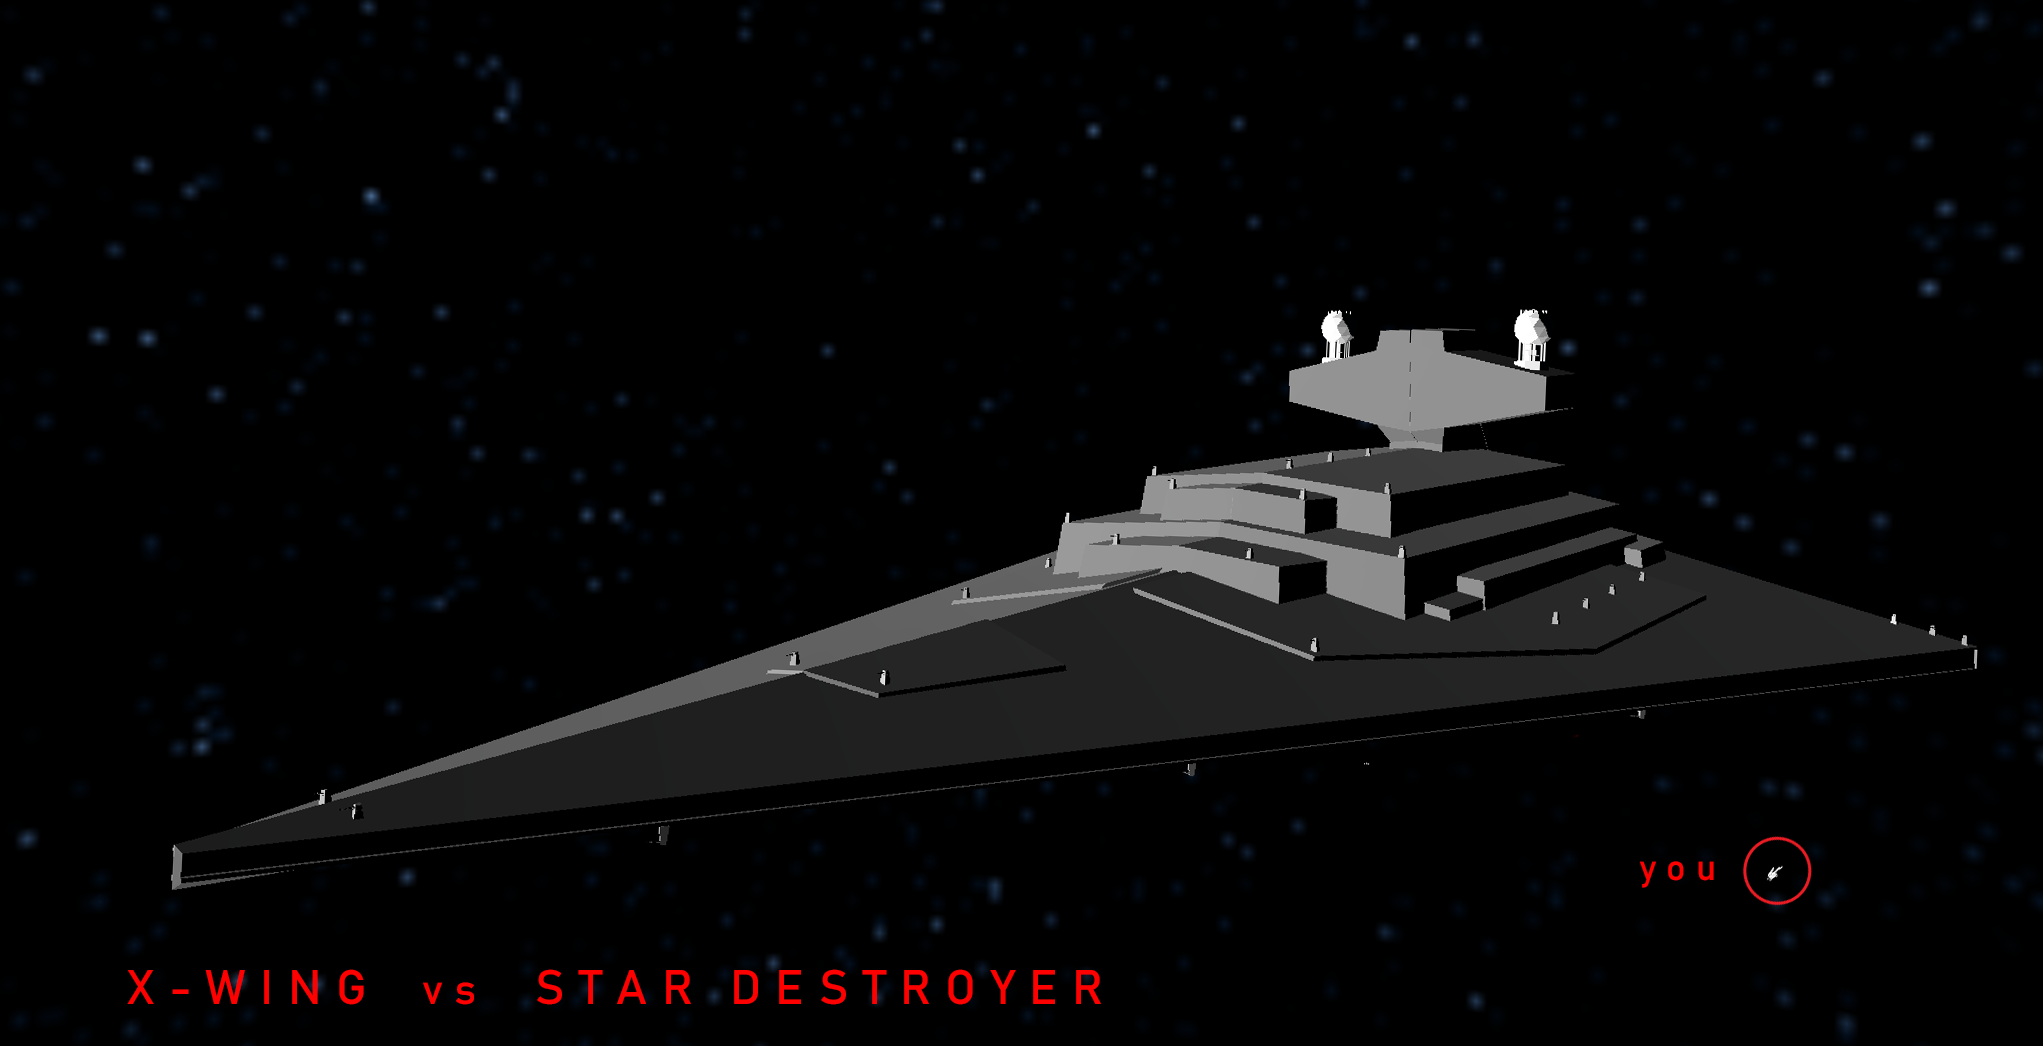 X-Wing vs Star Destroyer